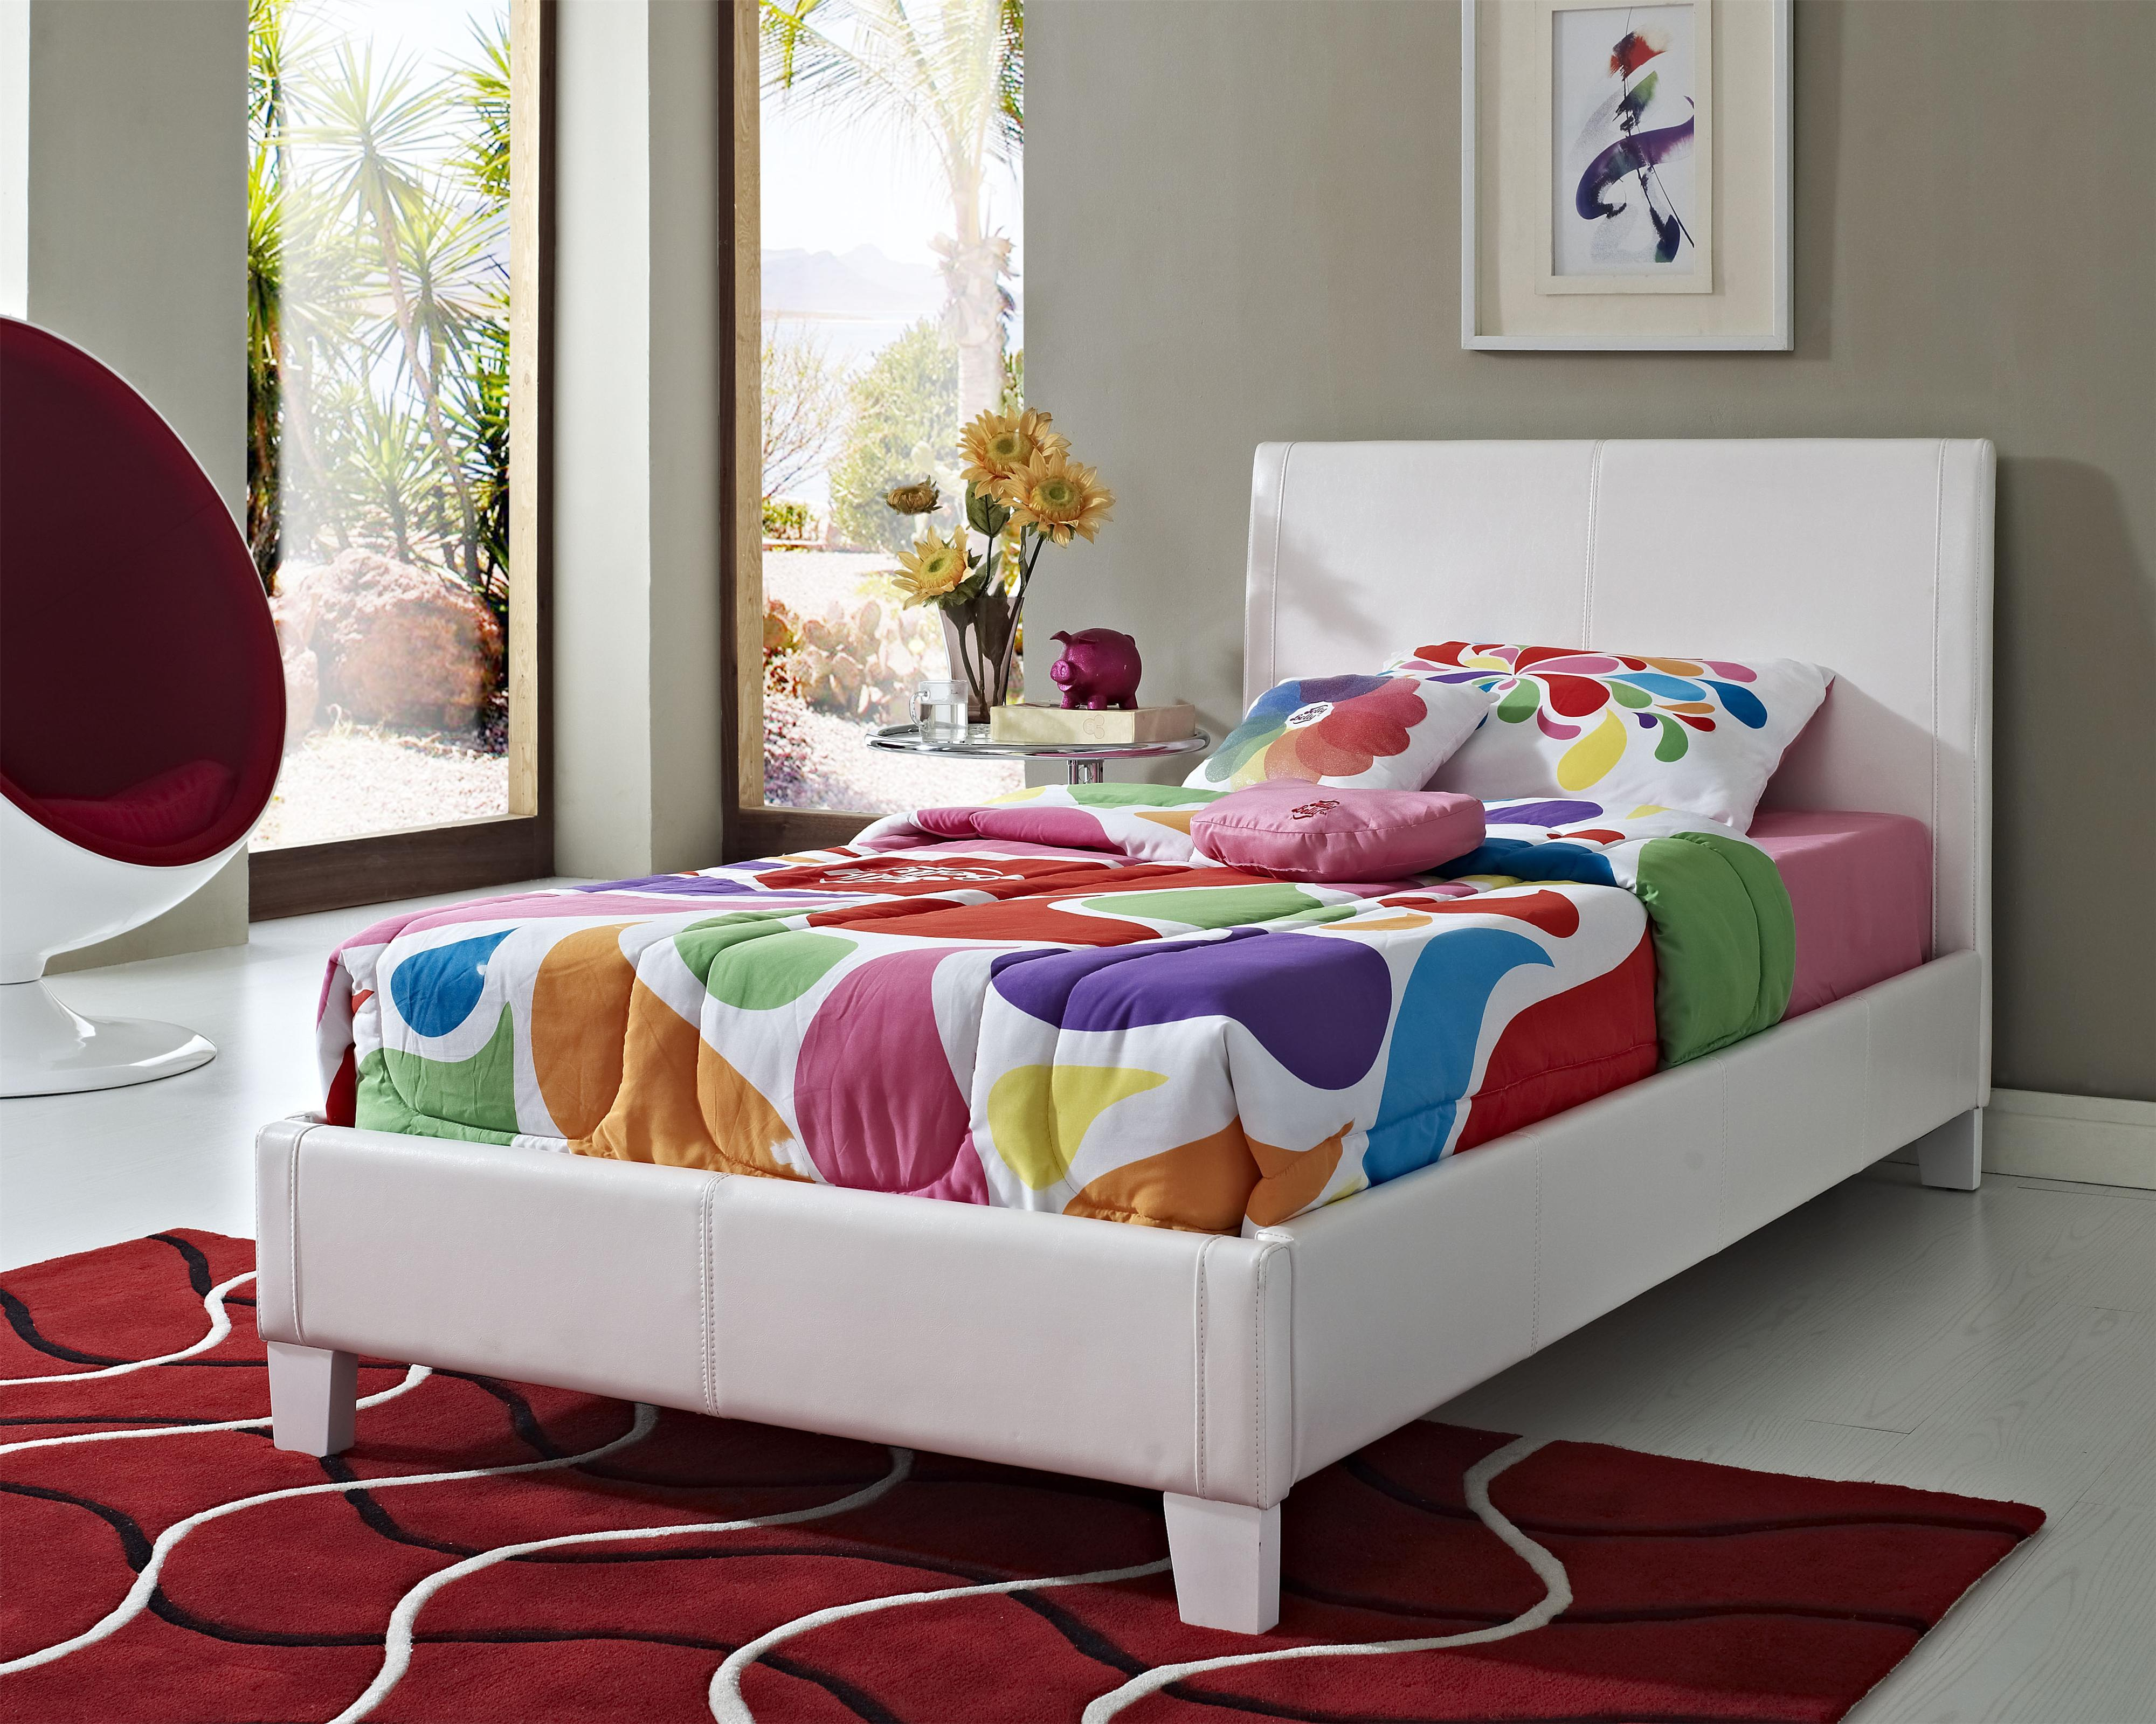 full size upholstered bed. Standard Furniture Fantasia Twin Upholstered Youth Trundle Bed | Birmingham, Huntsville, Hoover, Decatur, Alabaster, Full Size U